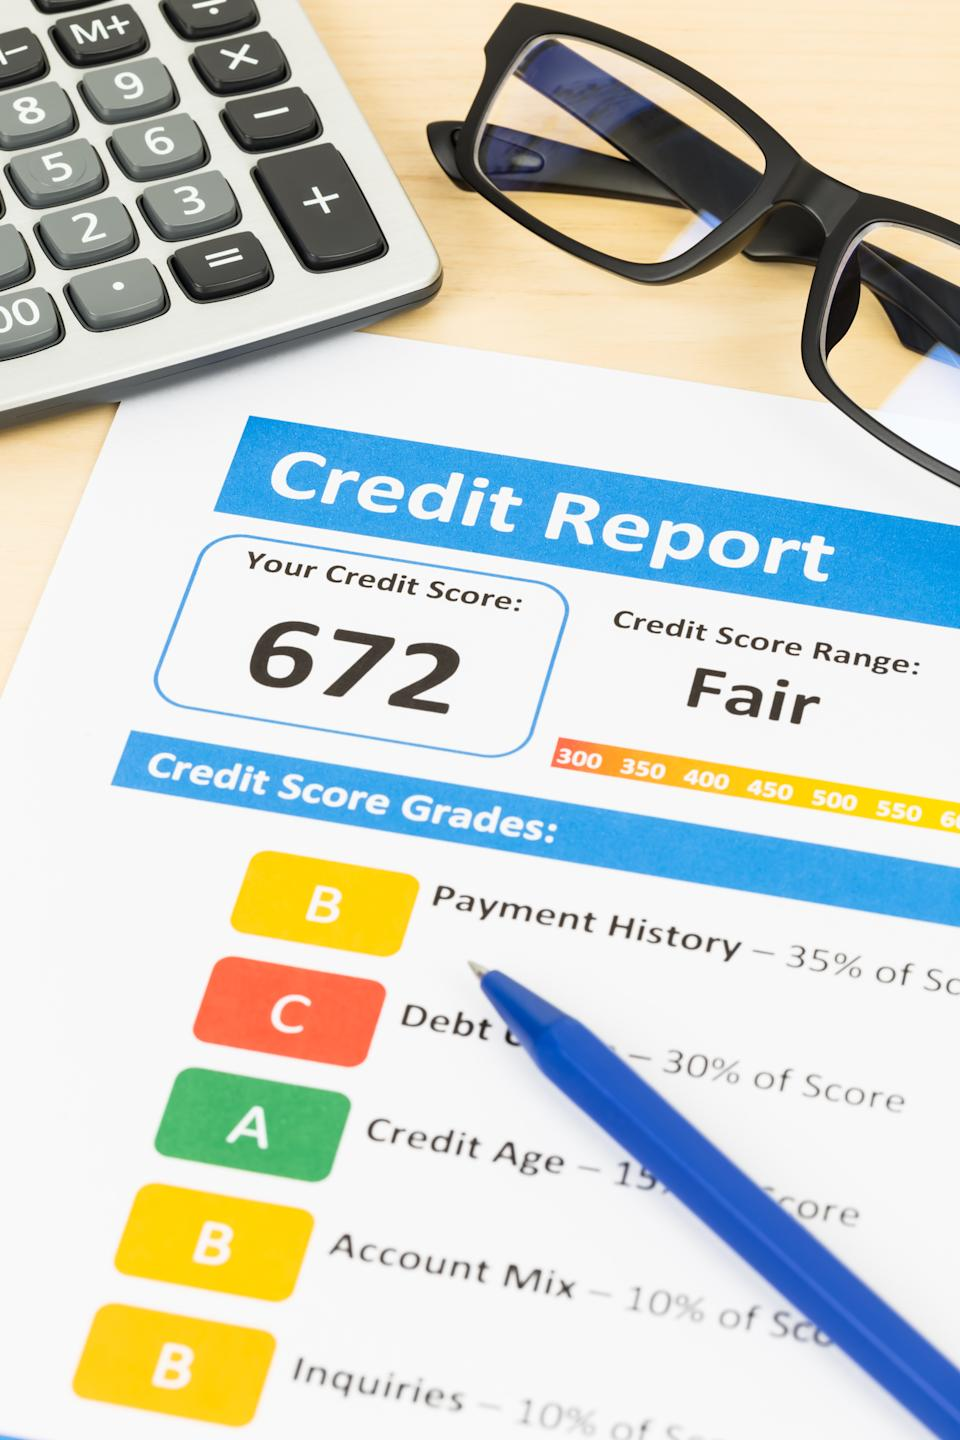 Fair credit score report with pen and calculator; document and the report are mocked-up